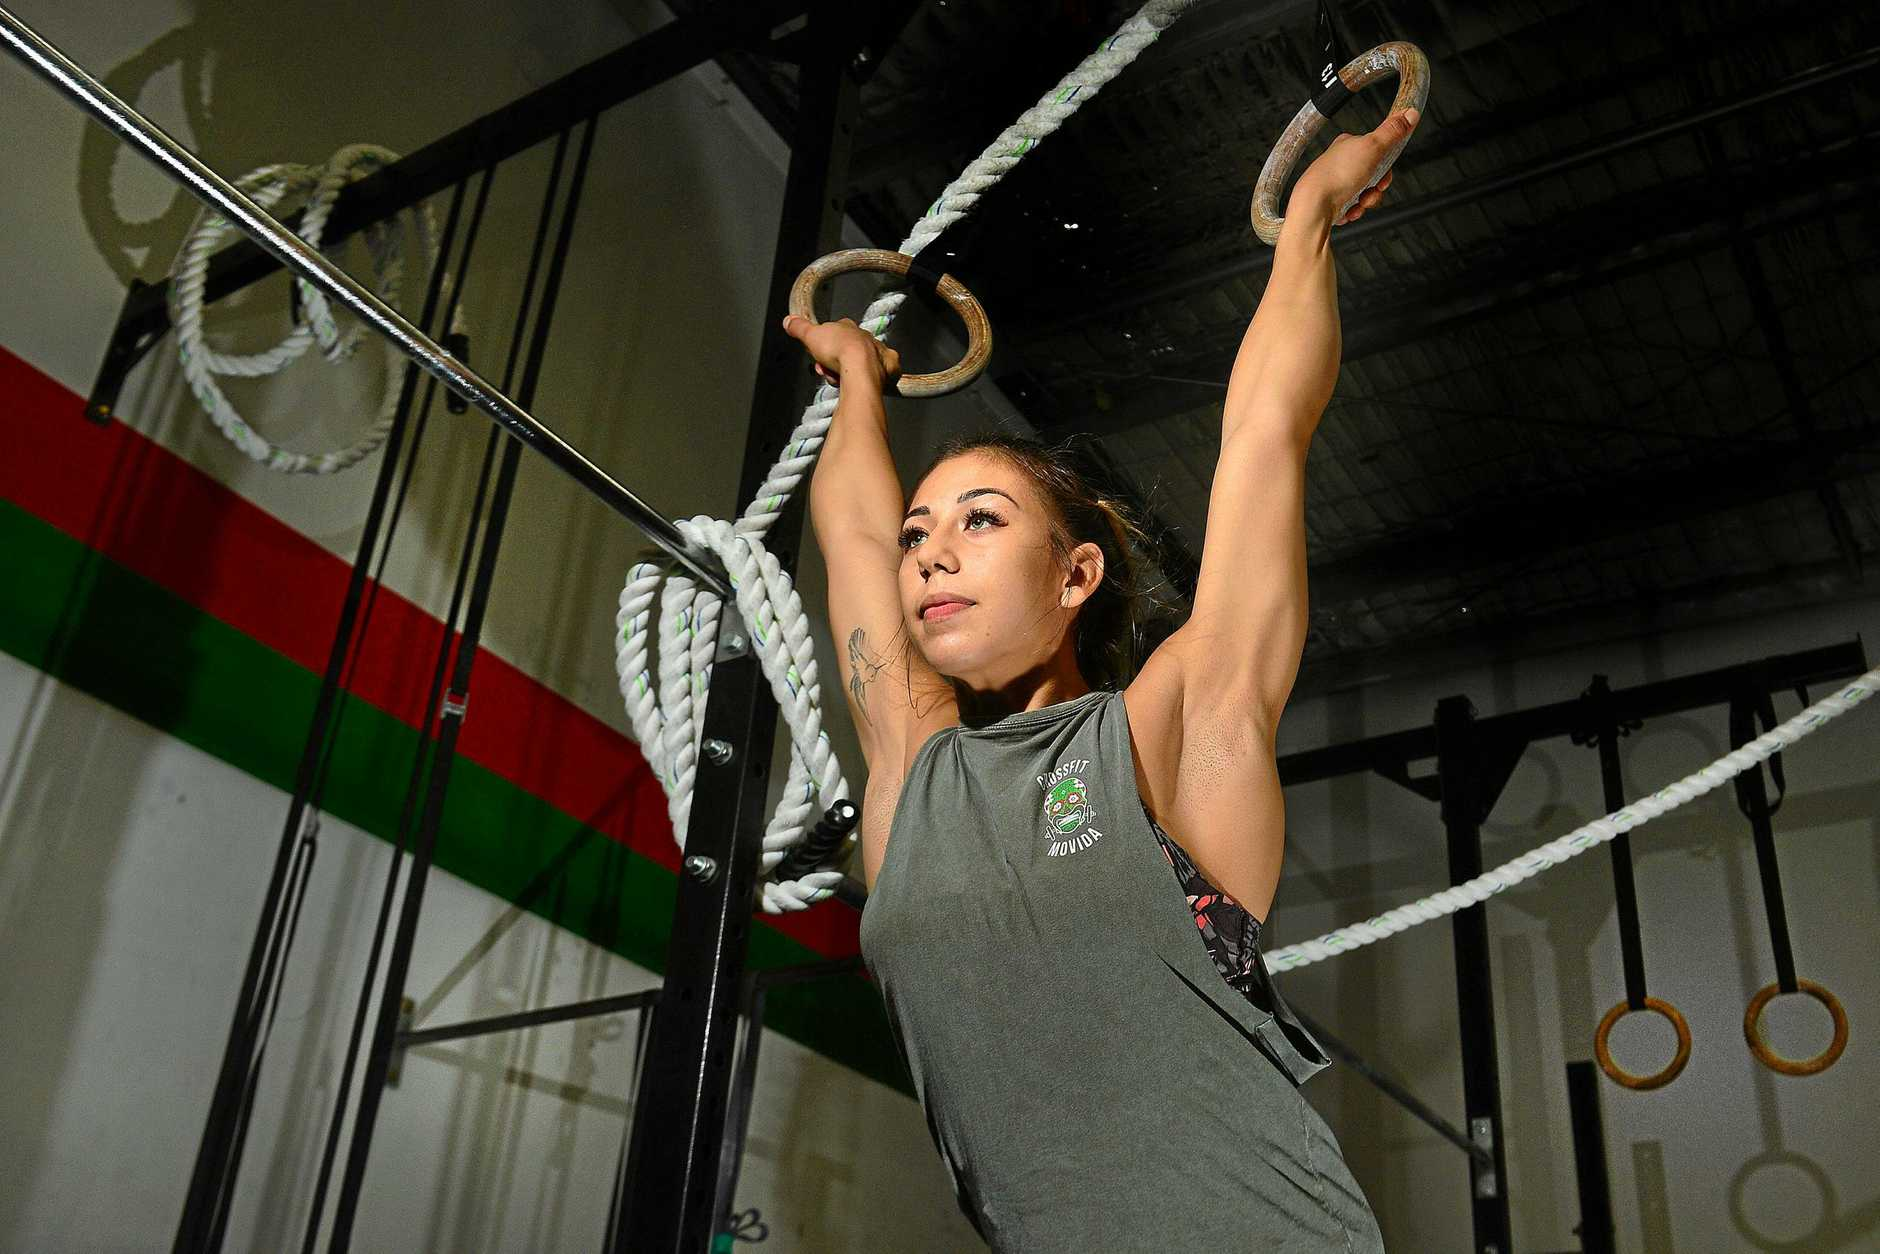 TOUGH TEST: Crossfit athlete Isabella Vallejo is preparing for a three-day competition that will test her physical and mental limits.